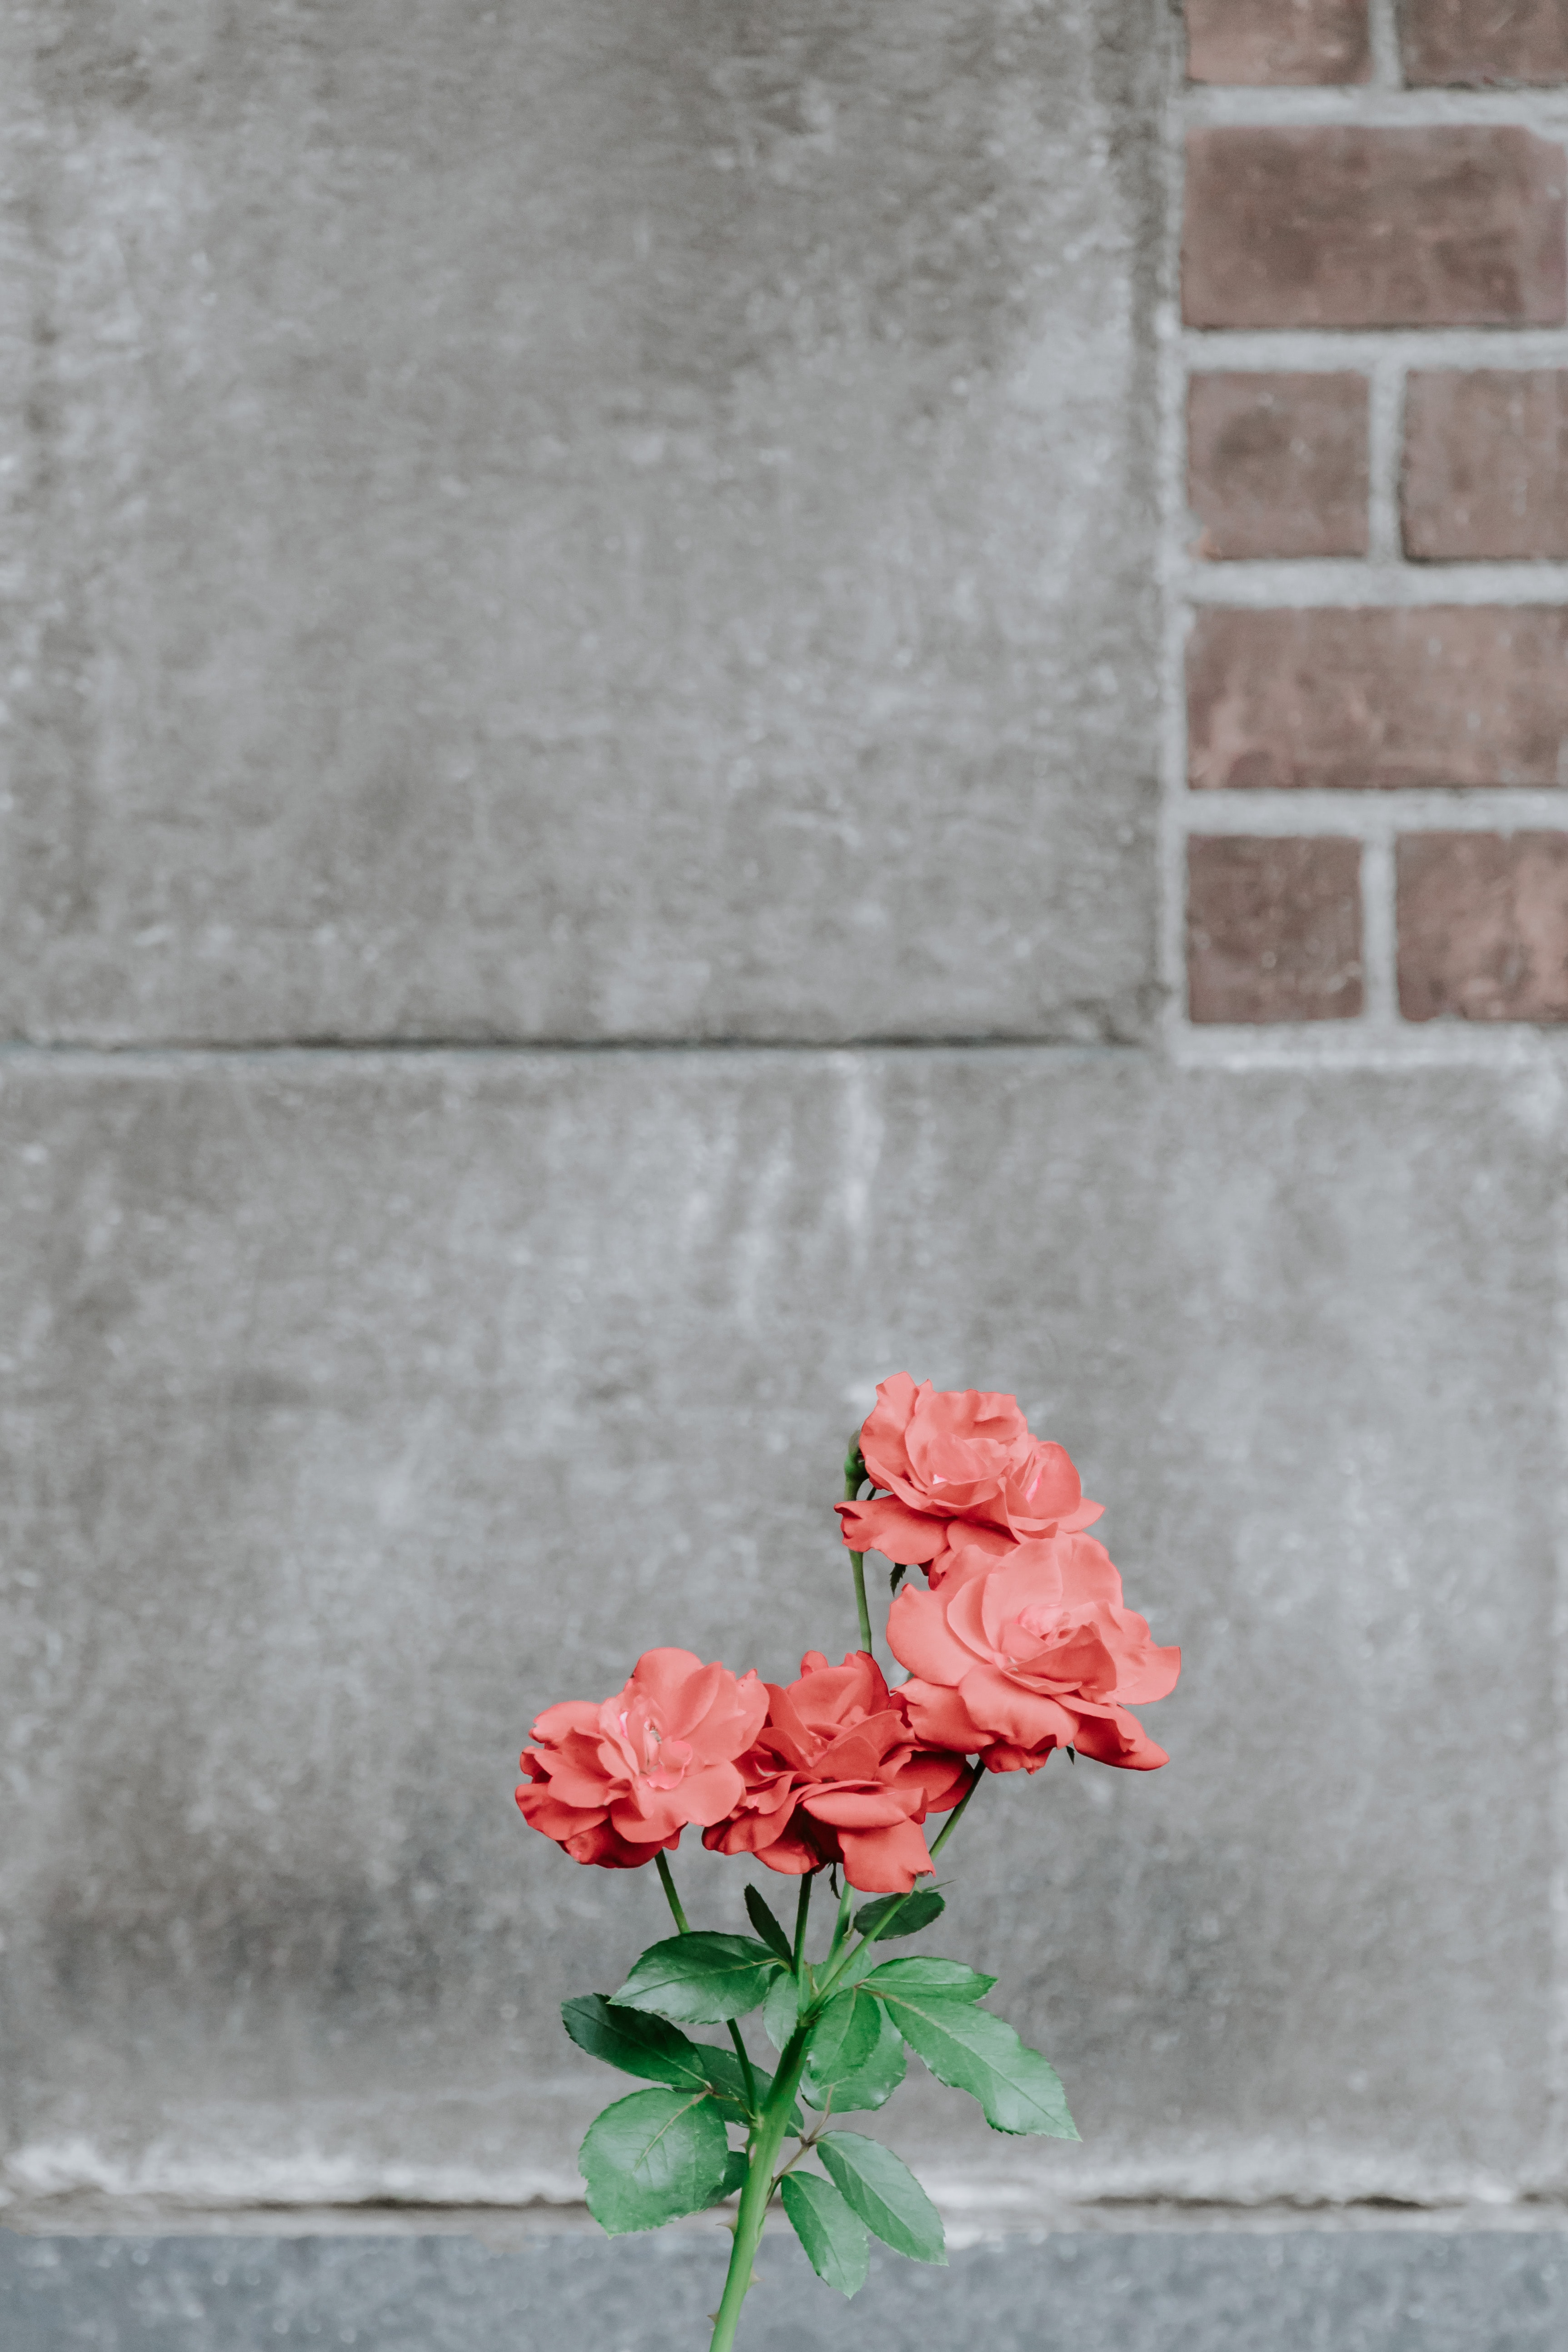 red rose flowers next to gray concrete surface during daytime